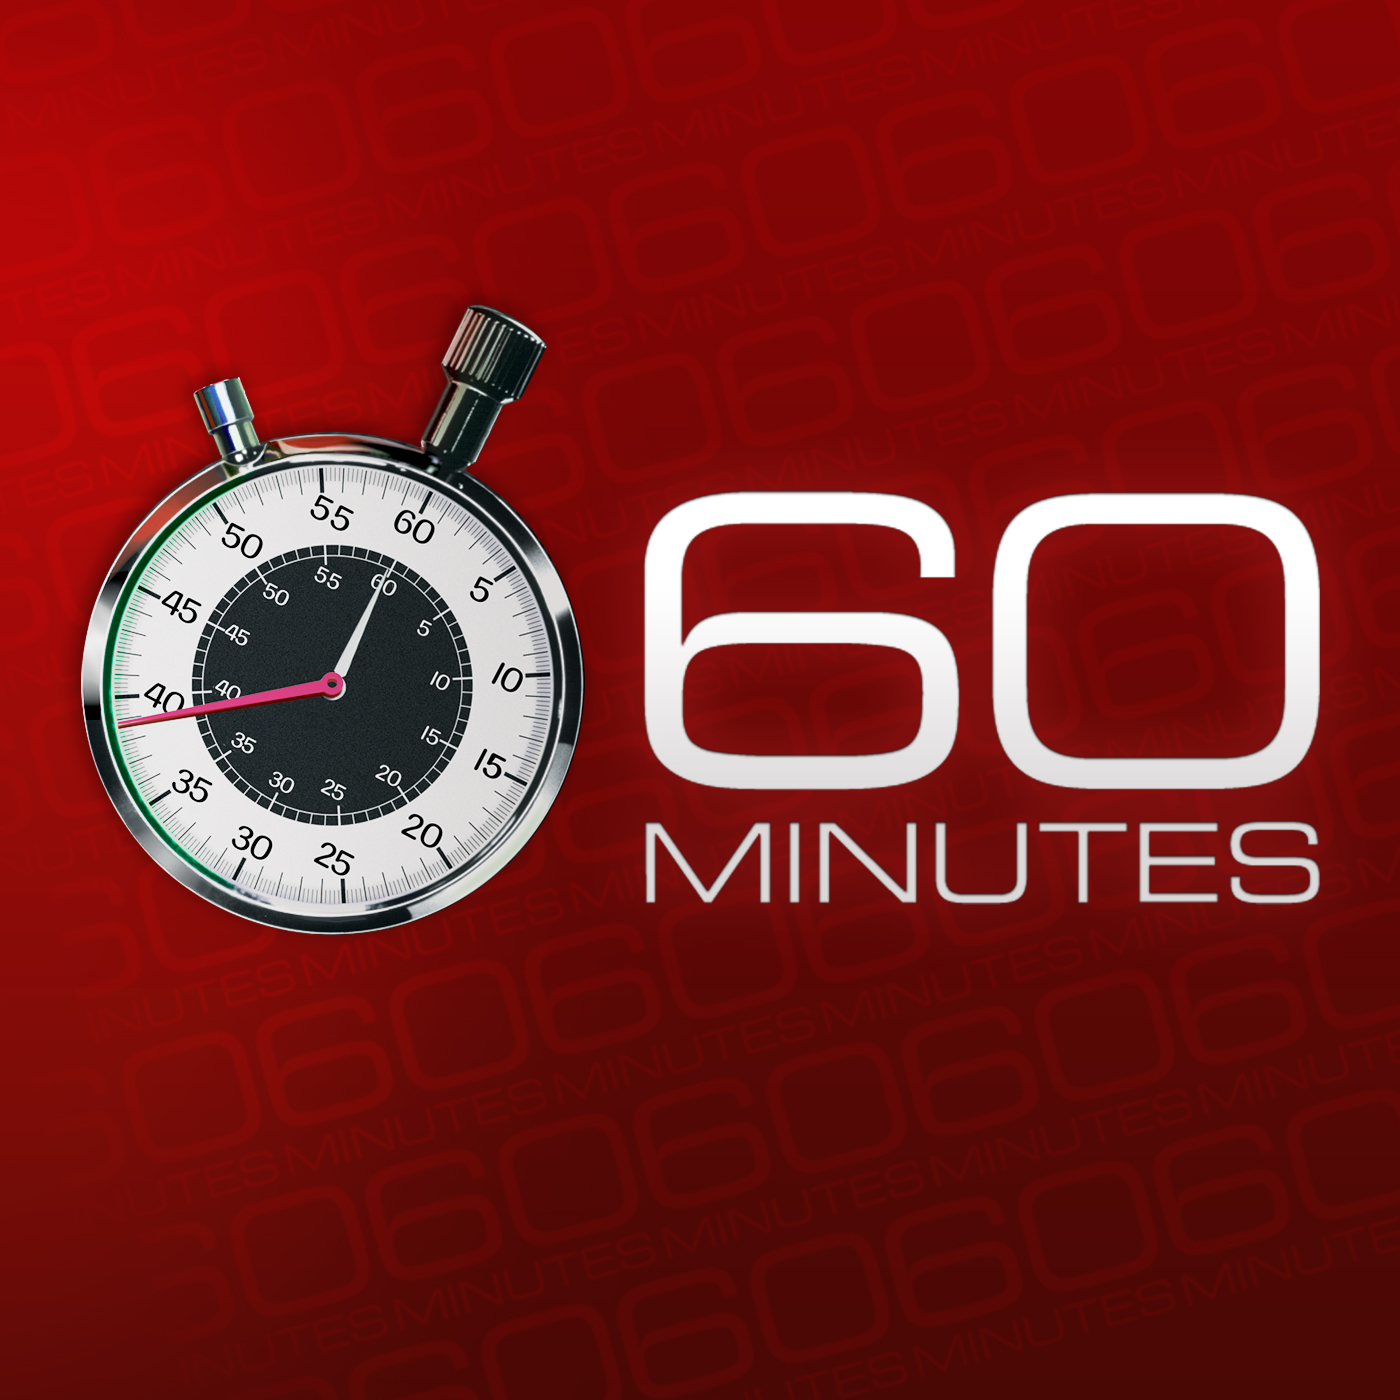 sixty minutes online - 3